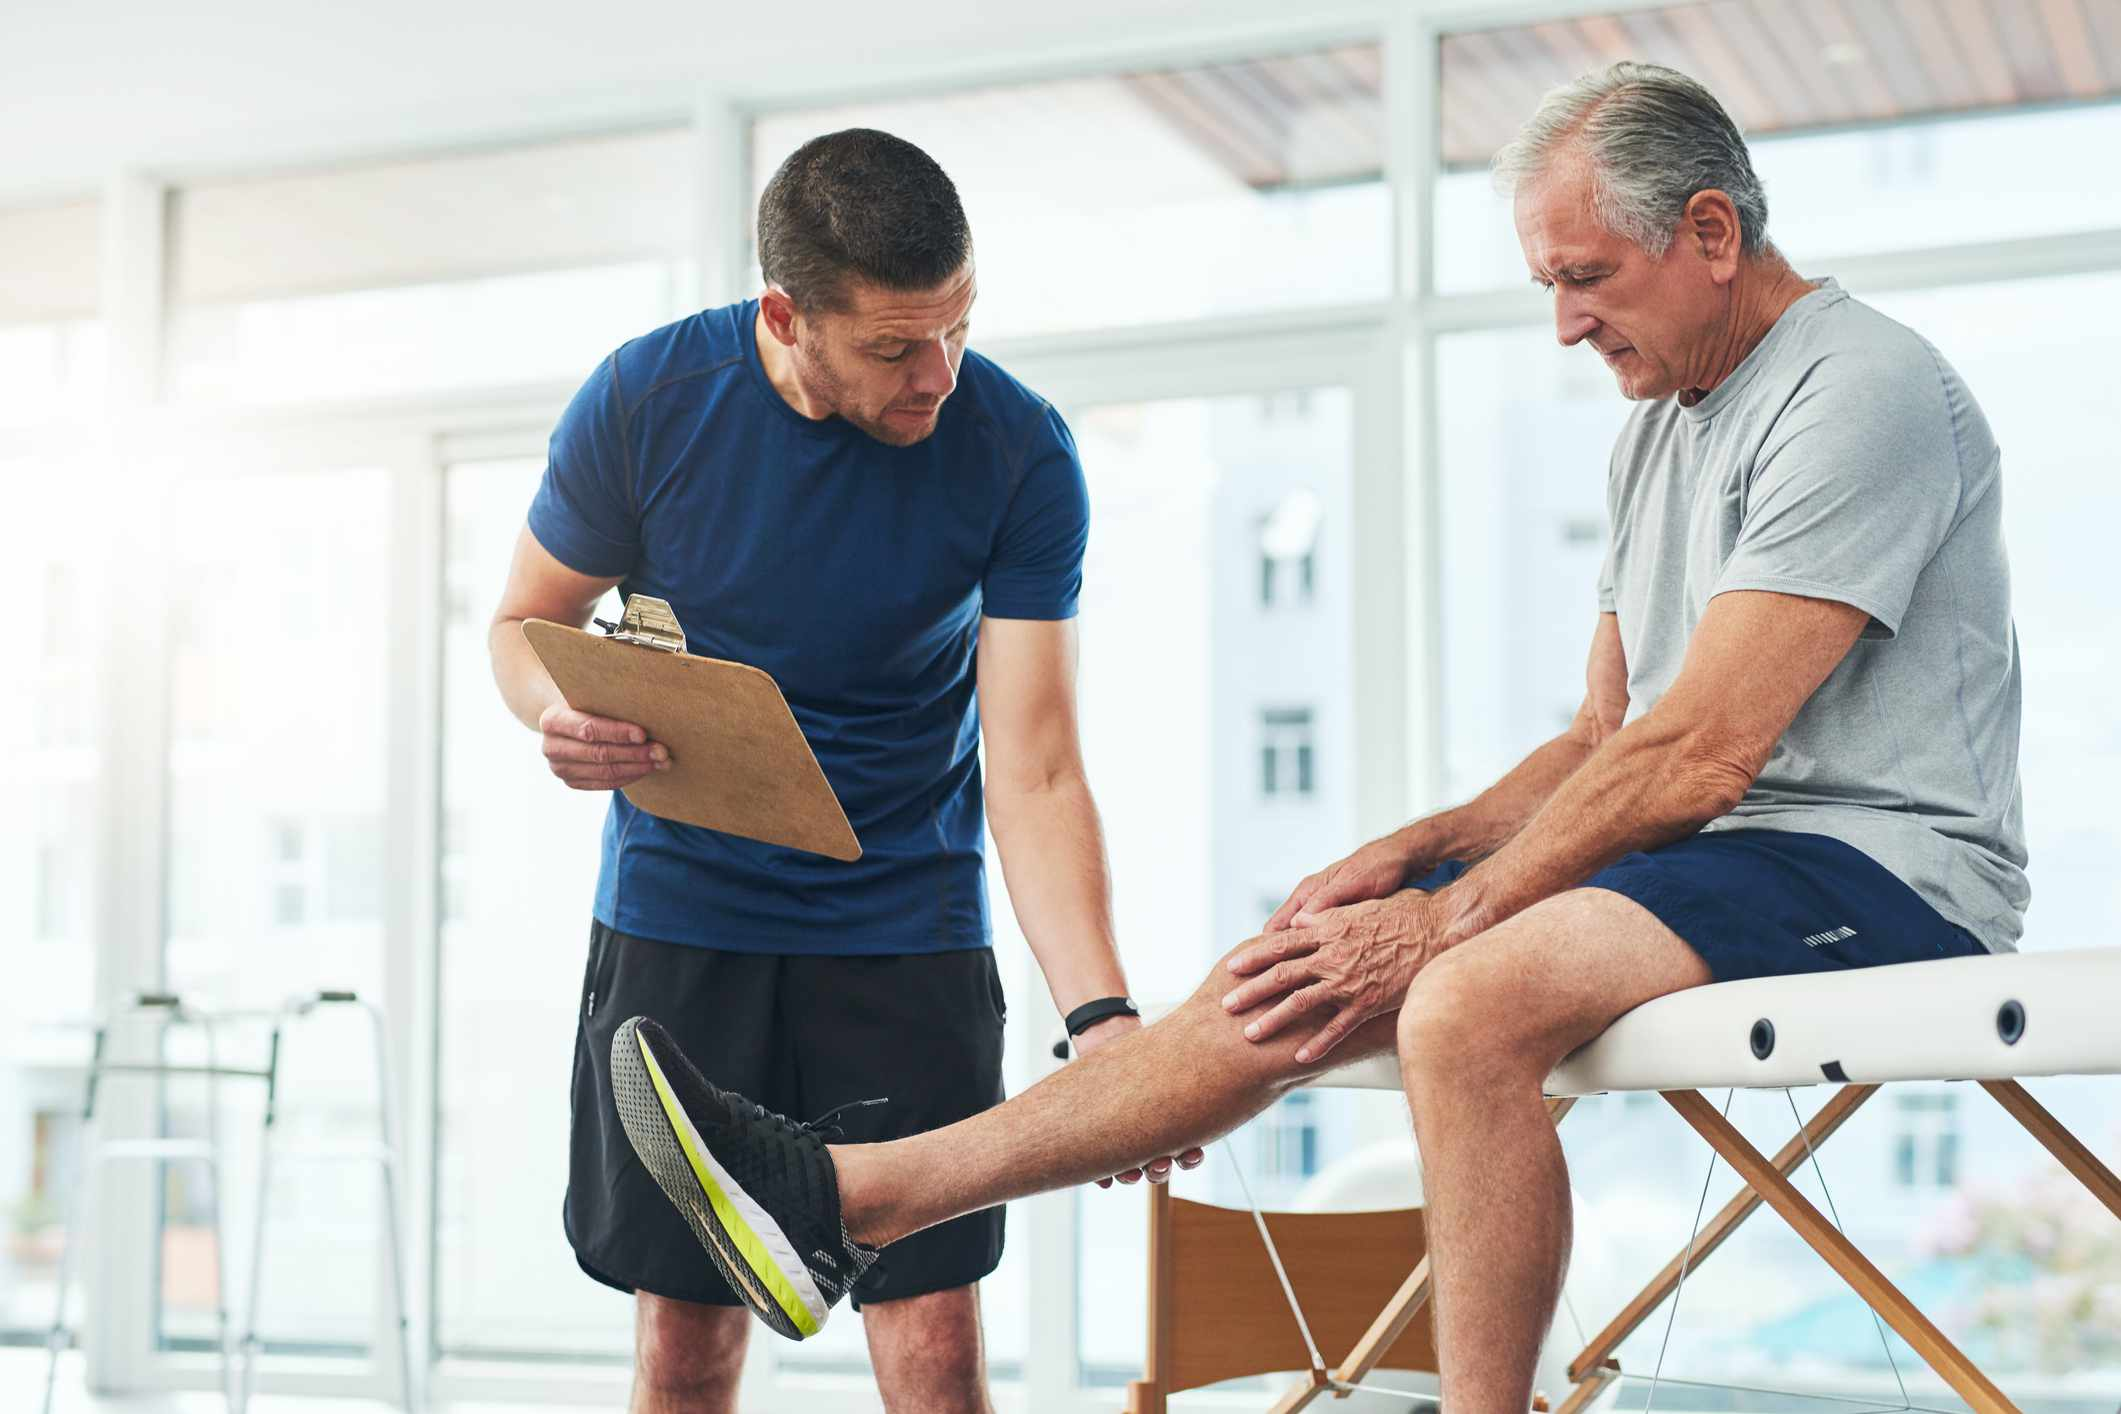 Man performing leg raise while physical therapist looks on